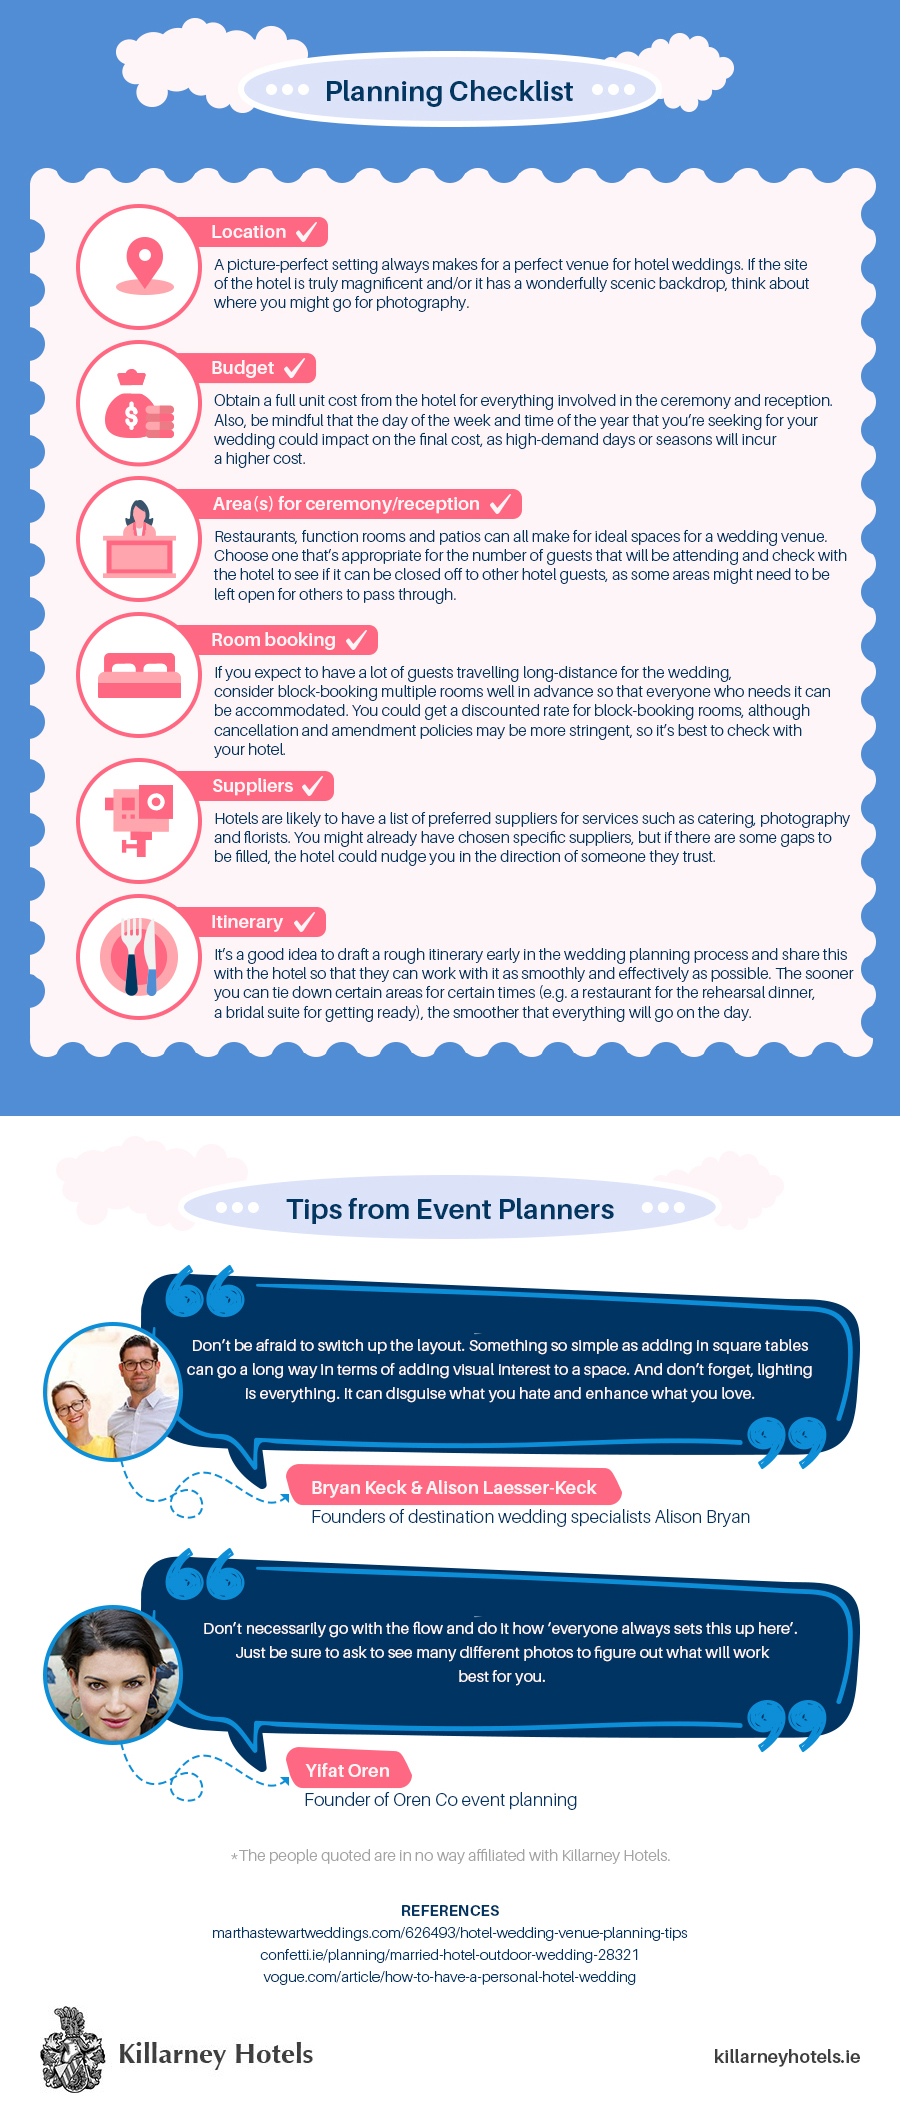 How to Plan a Hotel Wedding (Infographic)